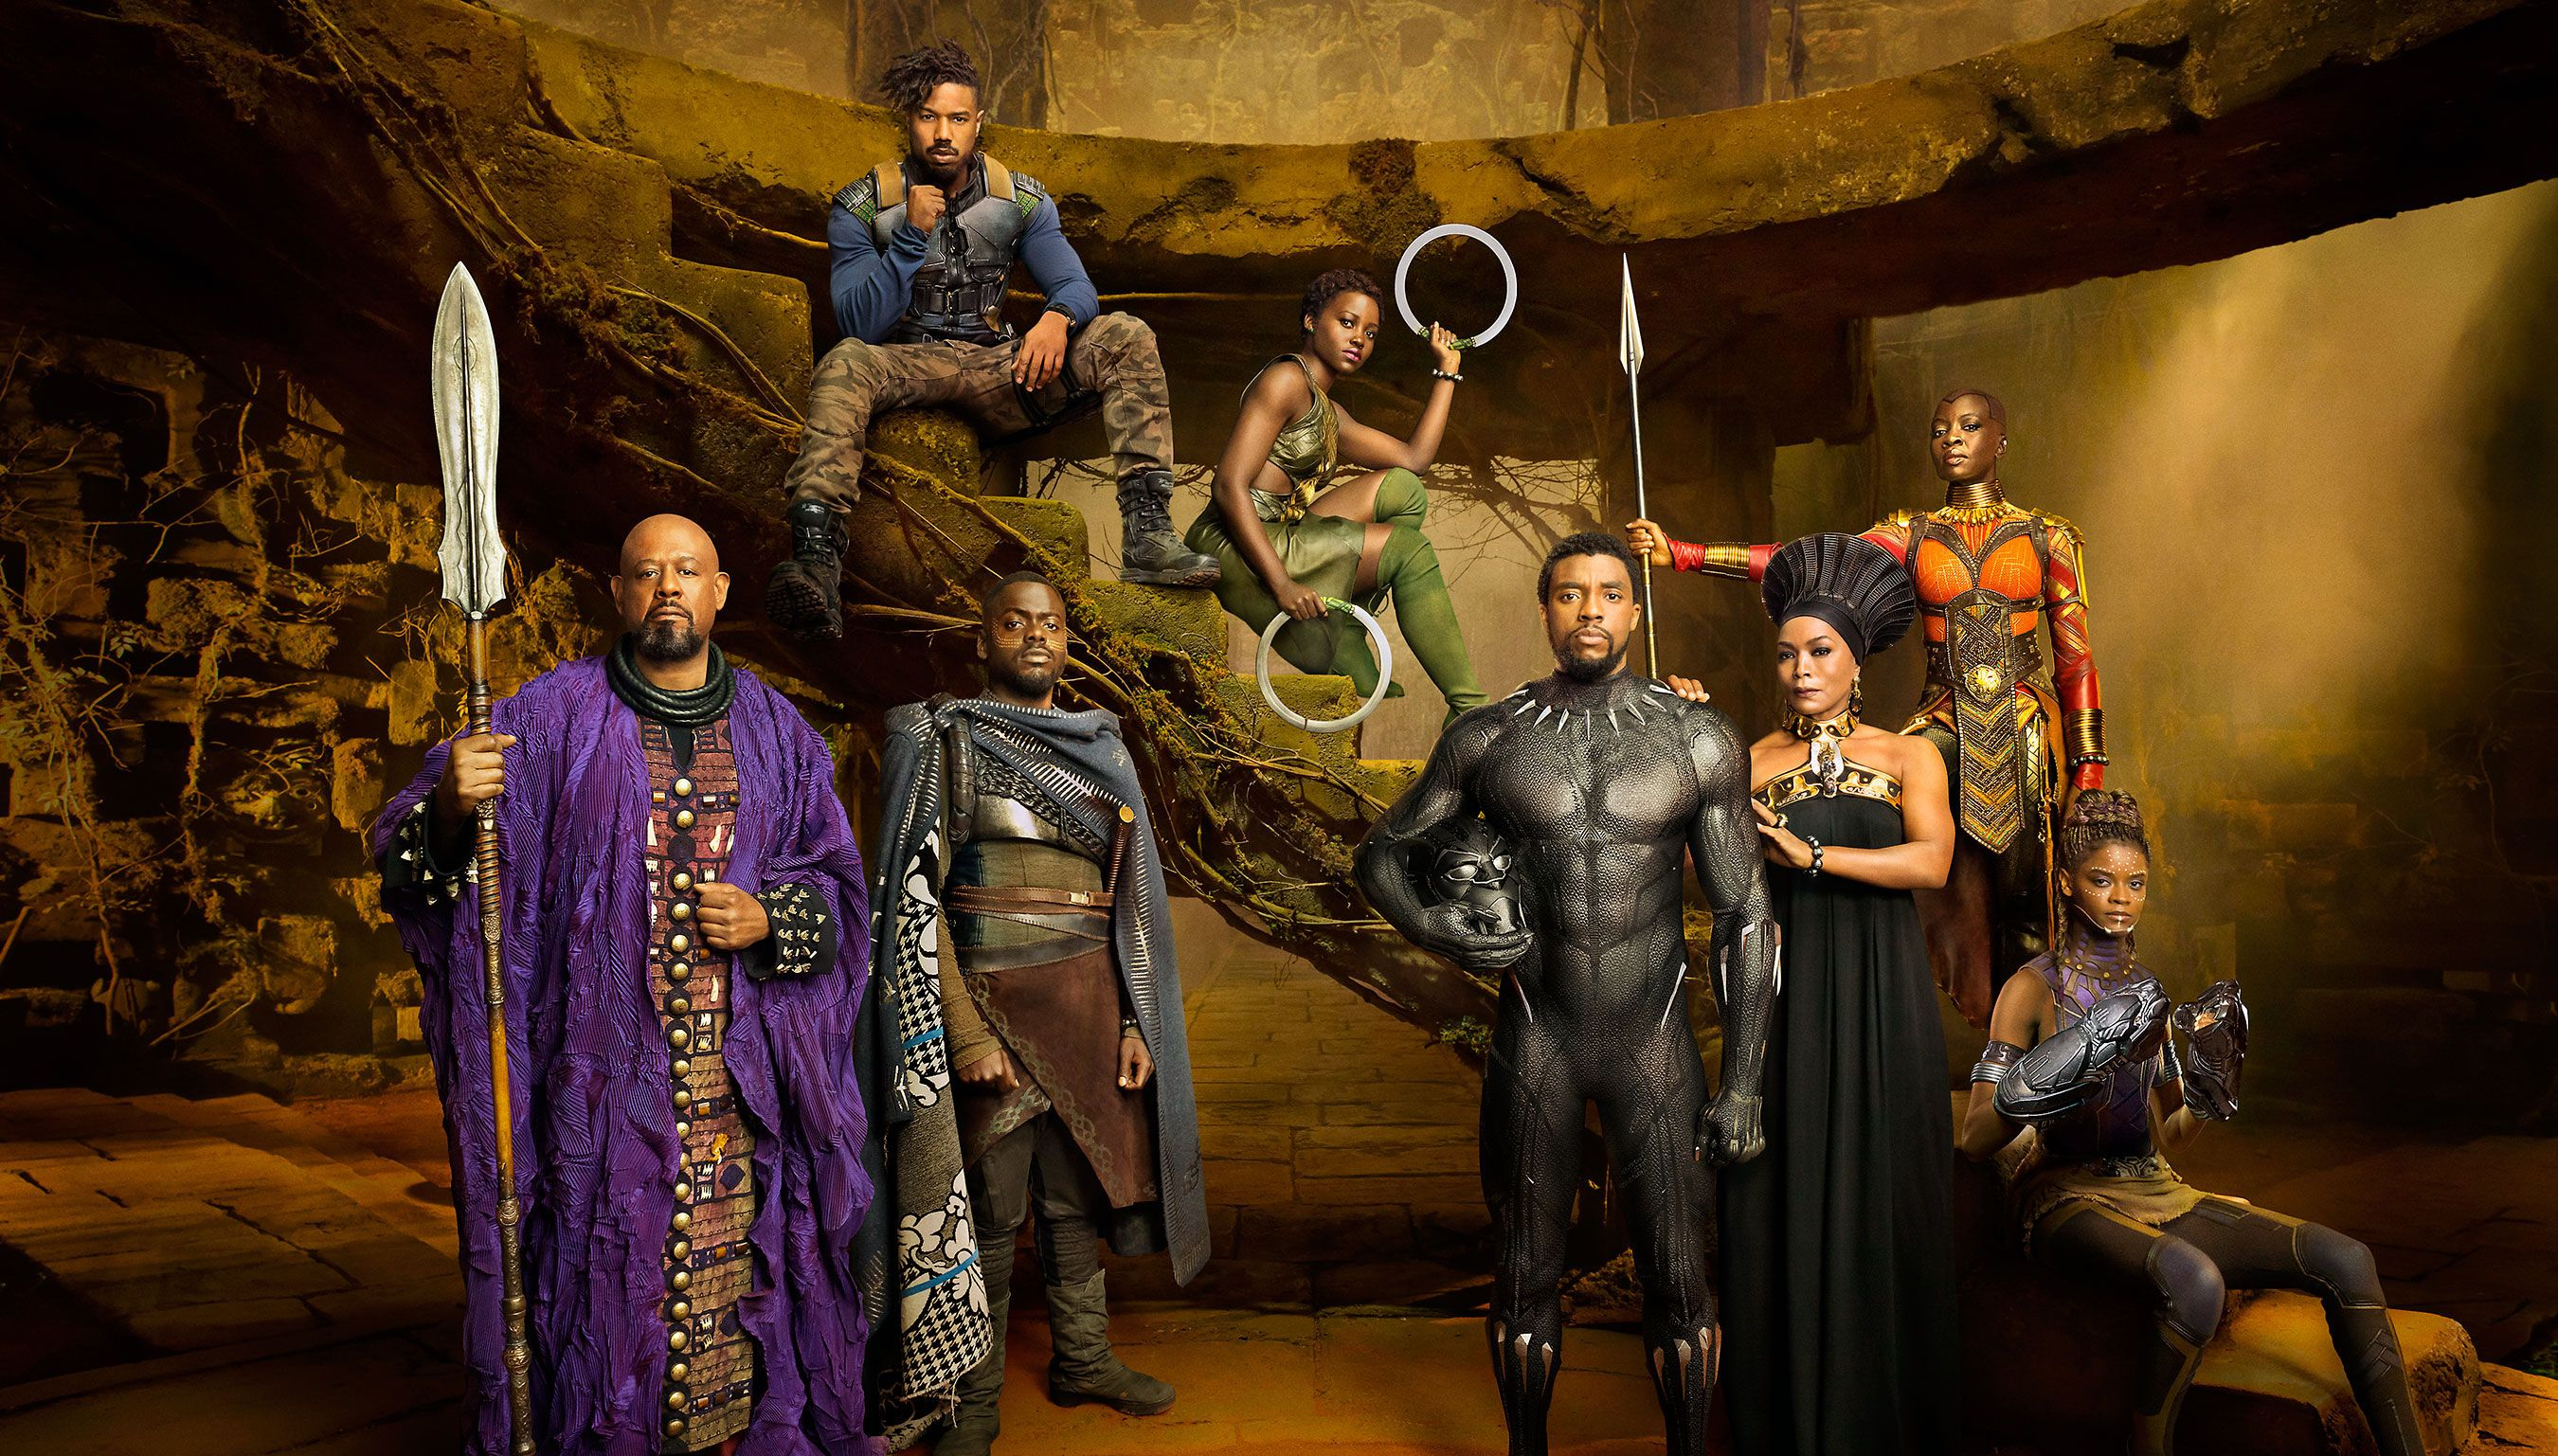 Black Panther's costumes are inspired by the old and the new | Image courtesy of Marvel/Disney/Black Panther